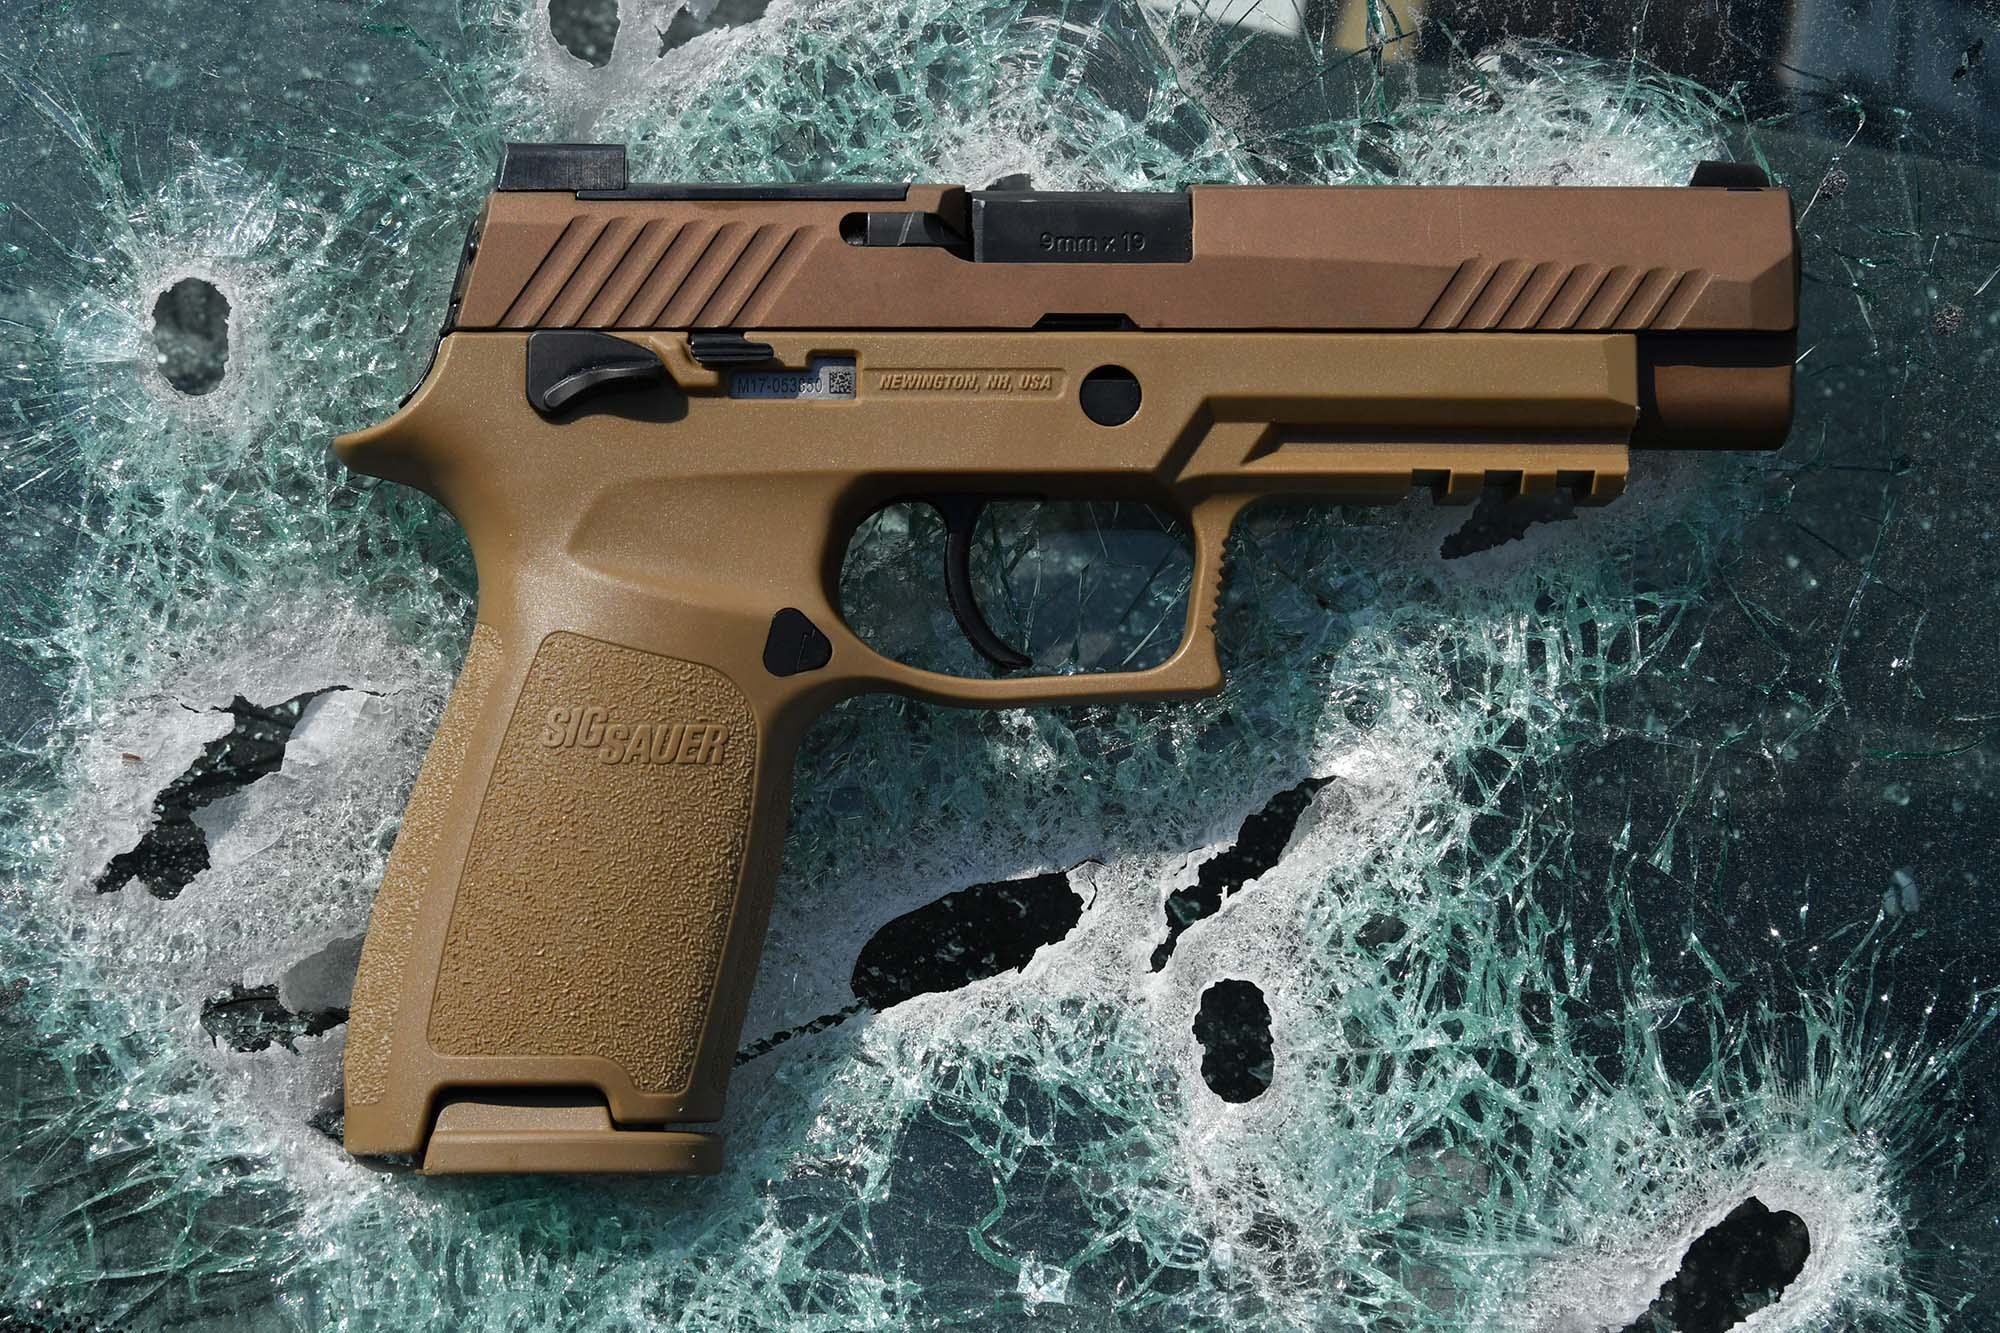 The SIG Sauer P320-M17, right side